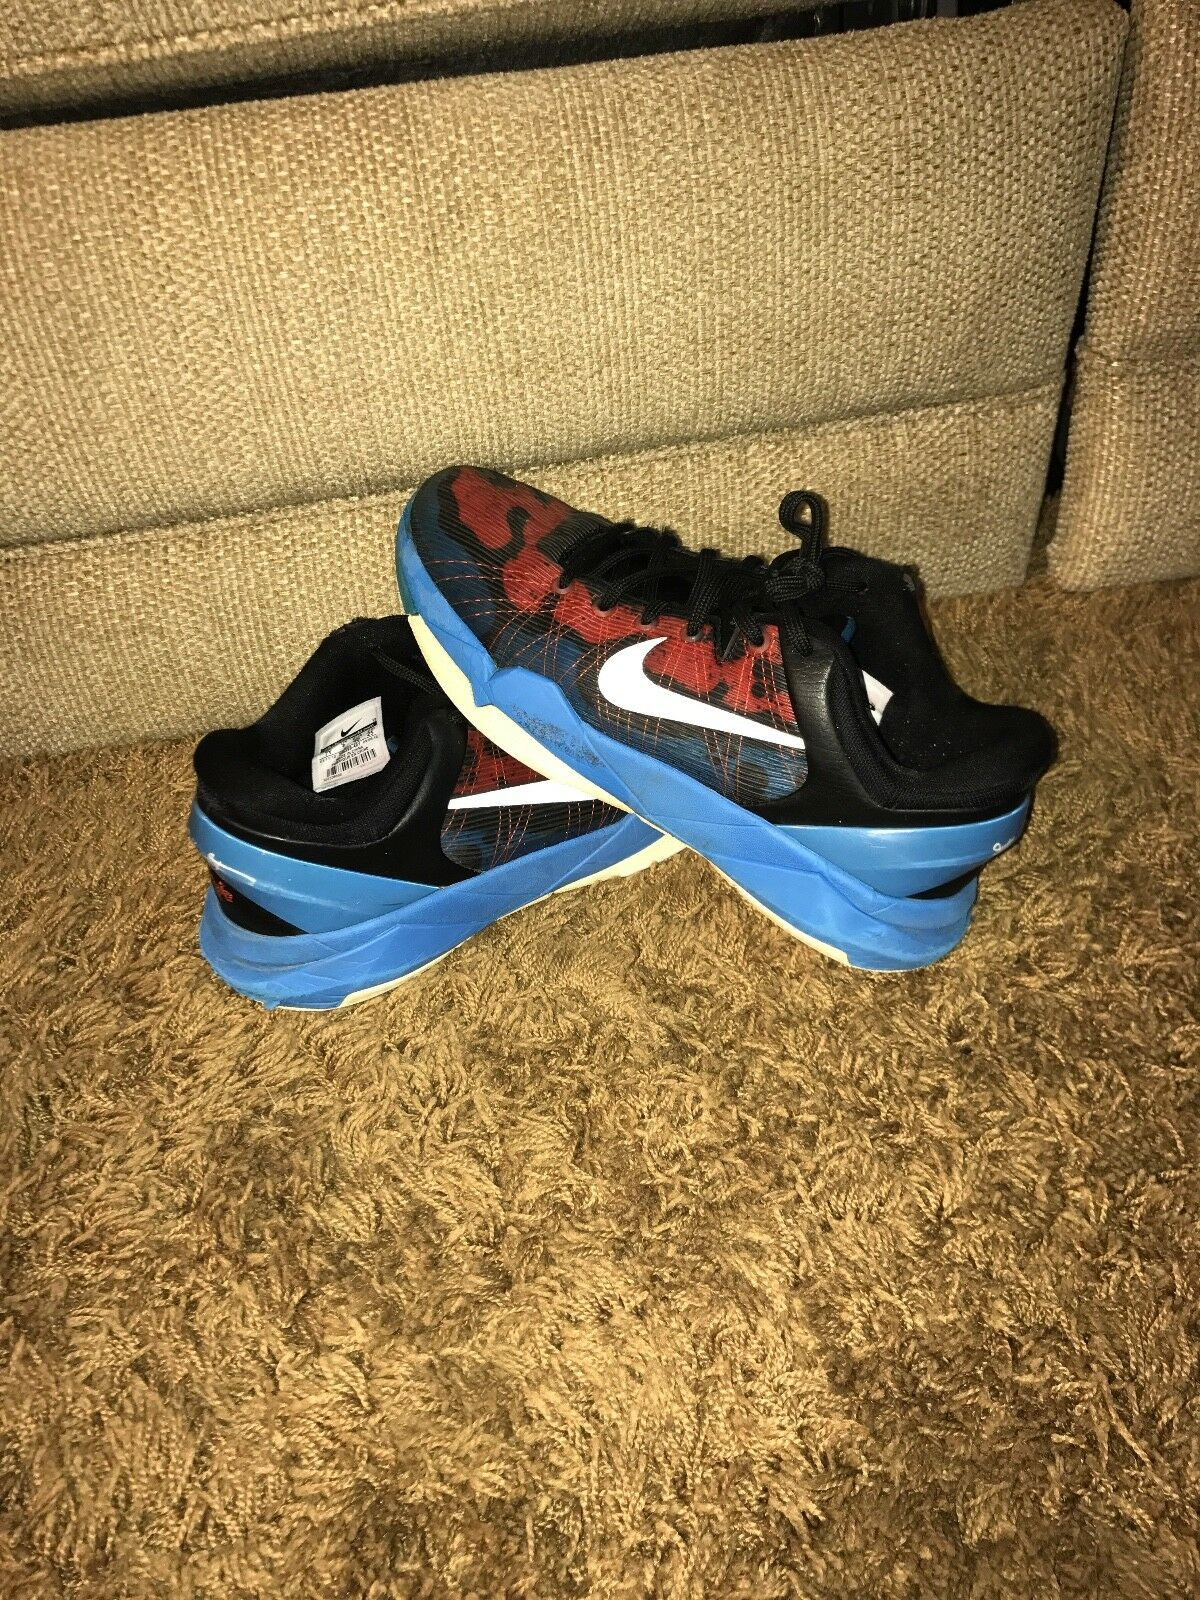 kobe 7 poison dart frog red white and blue size 7